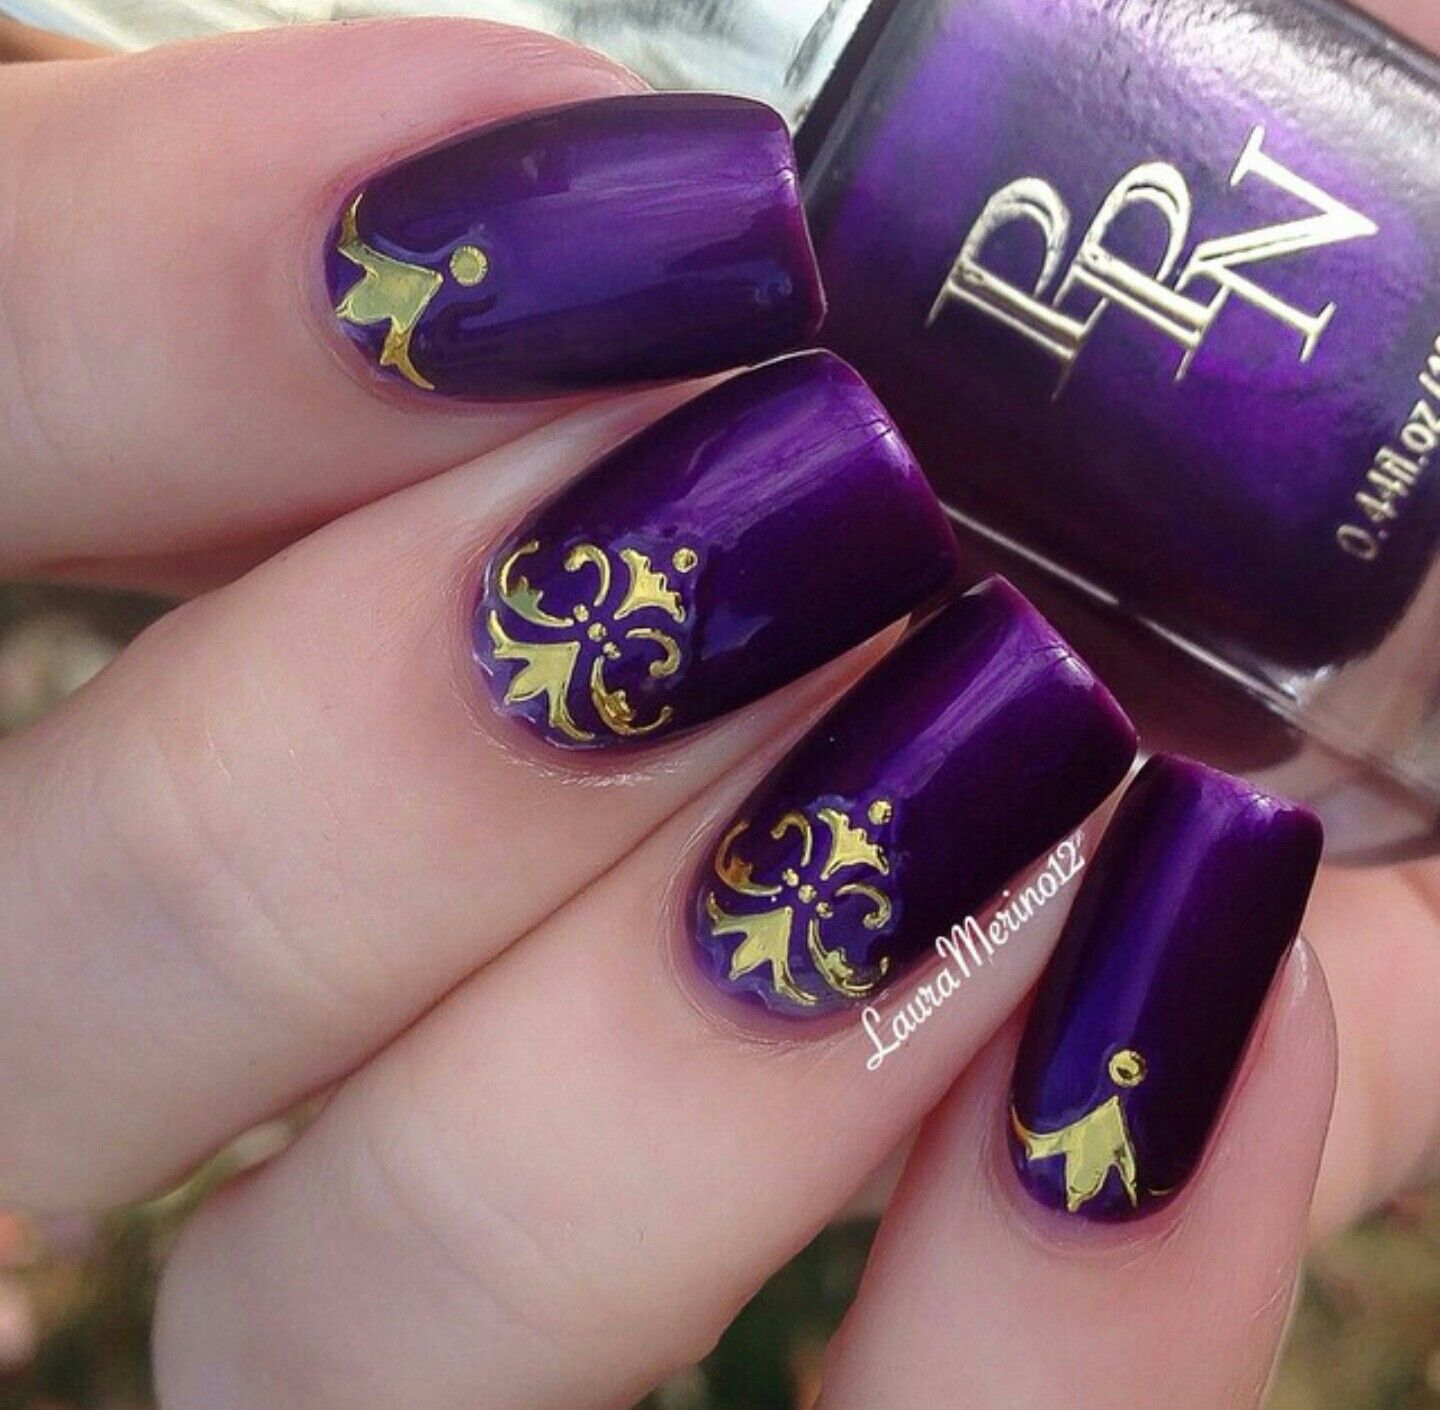 Royal purple & gold nail art | nail art | Pinterest | Gold nail art ...